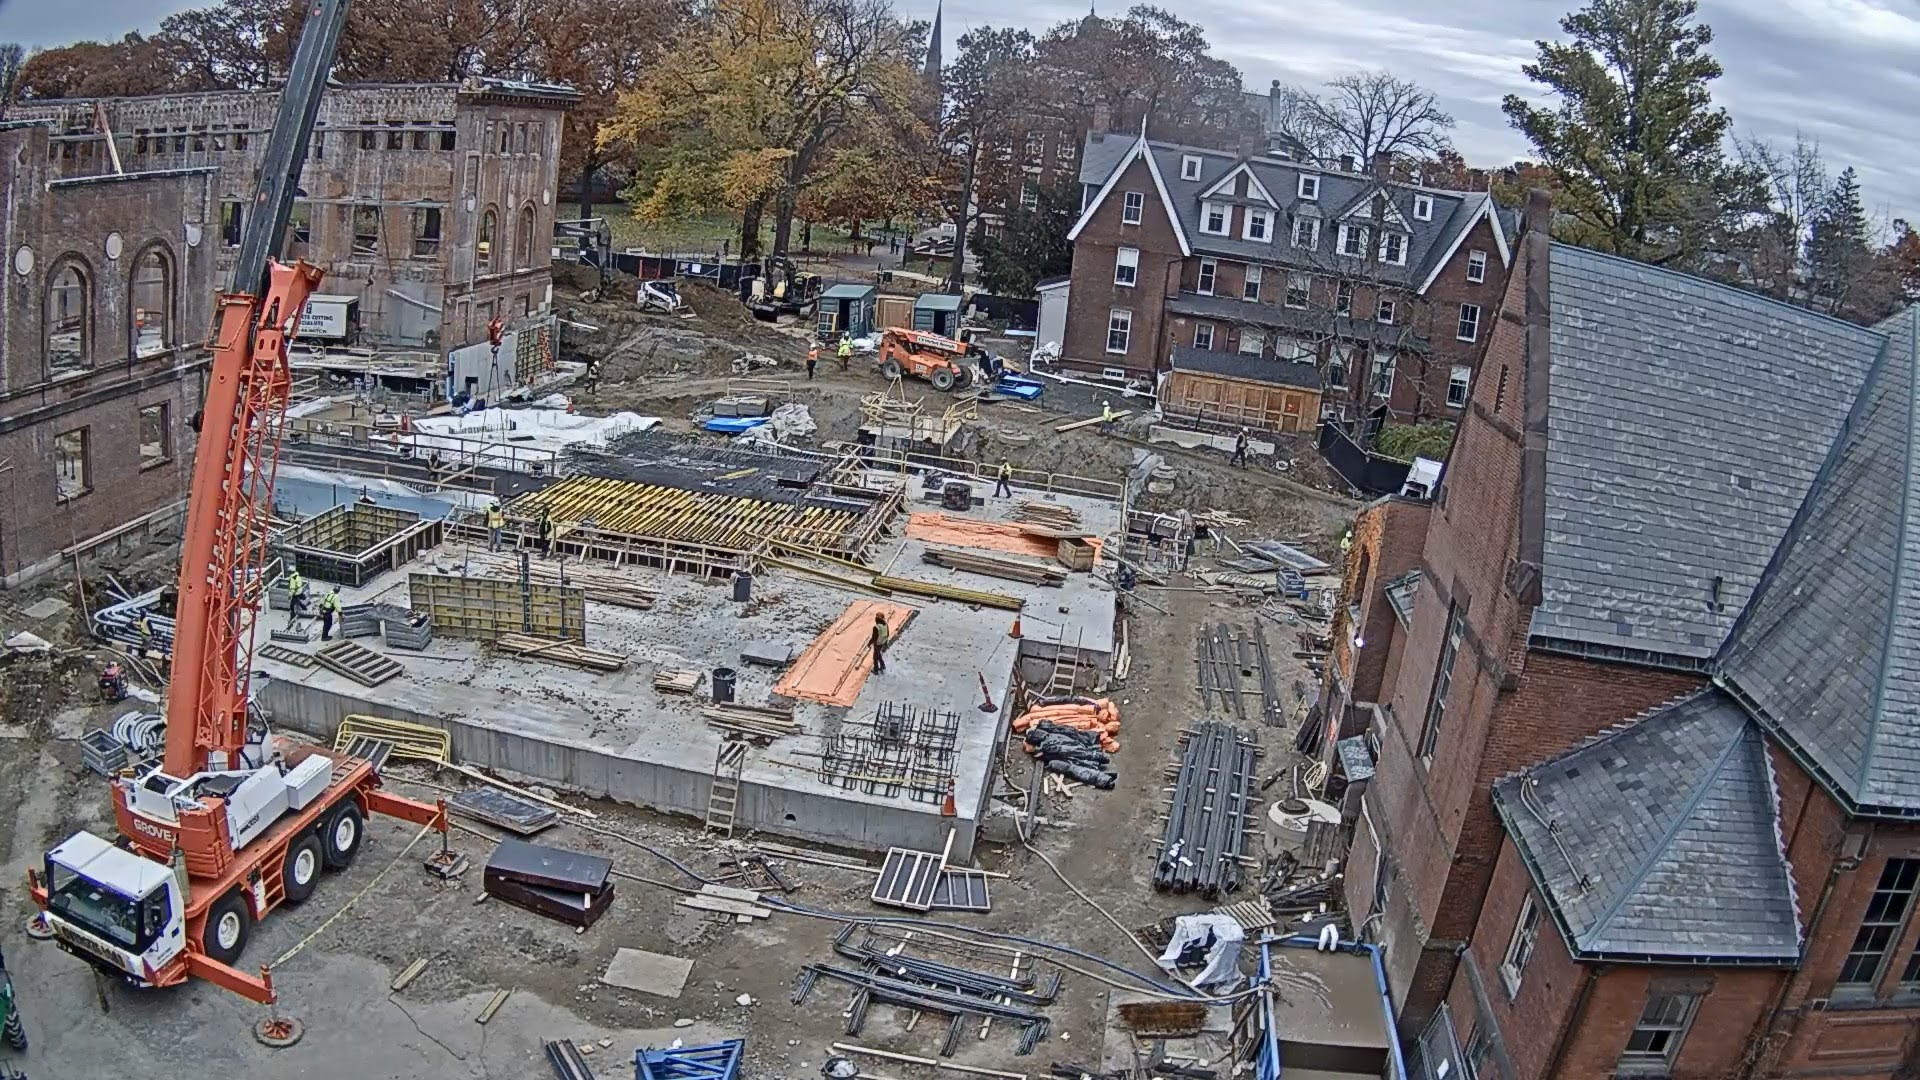 South addition construction site November 2018